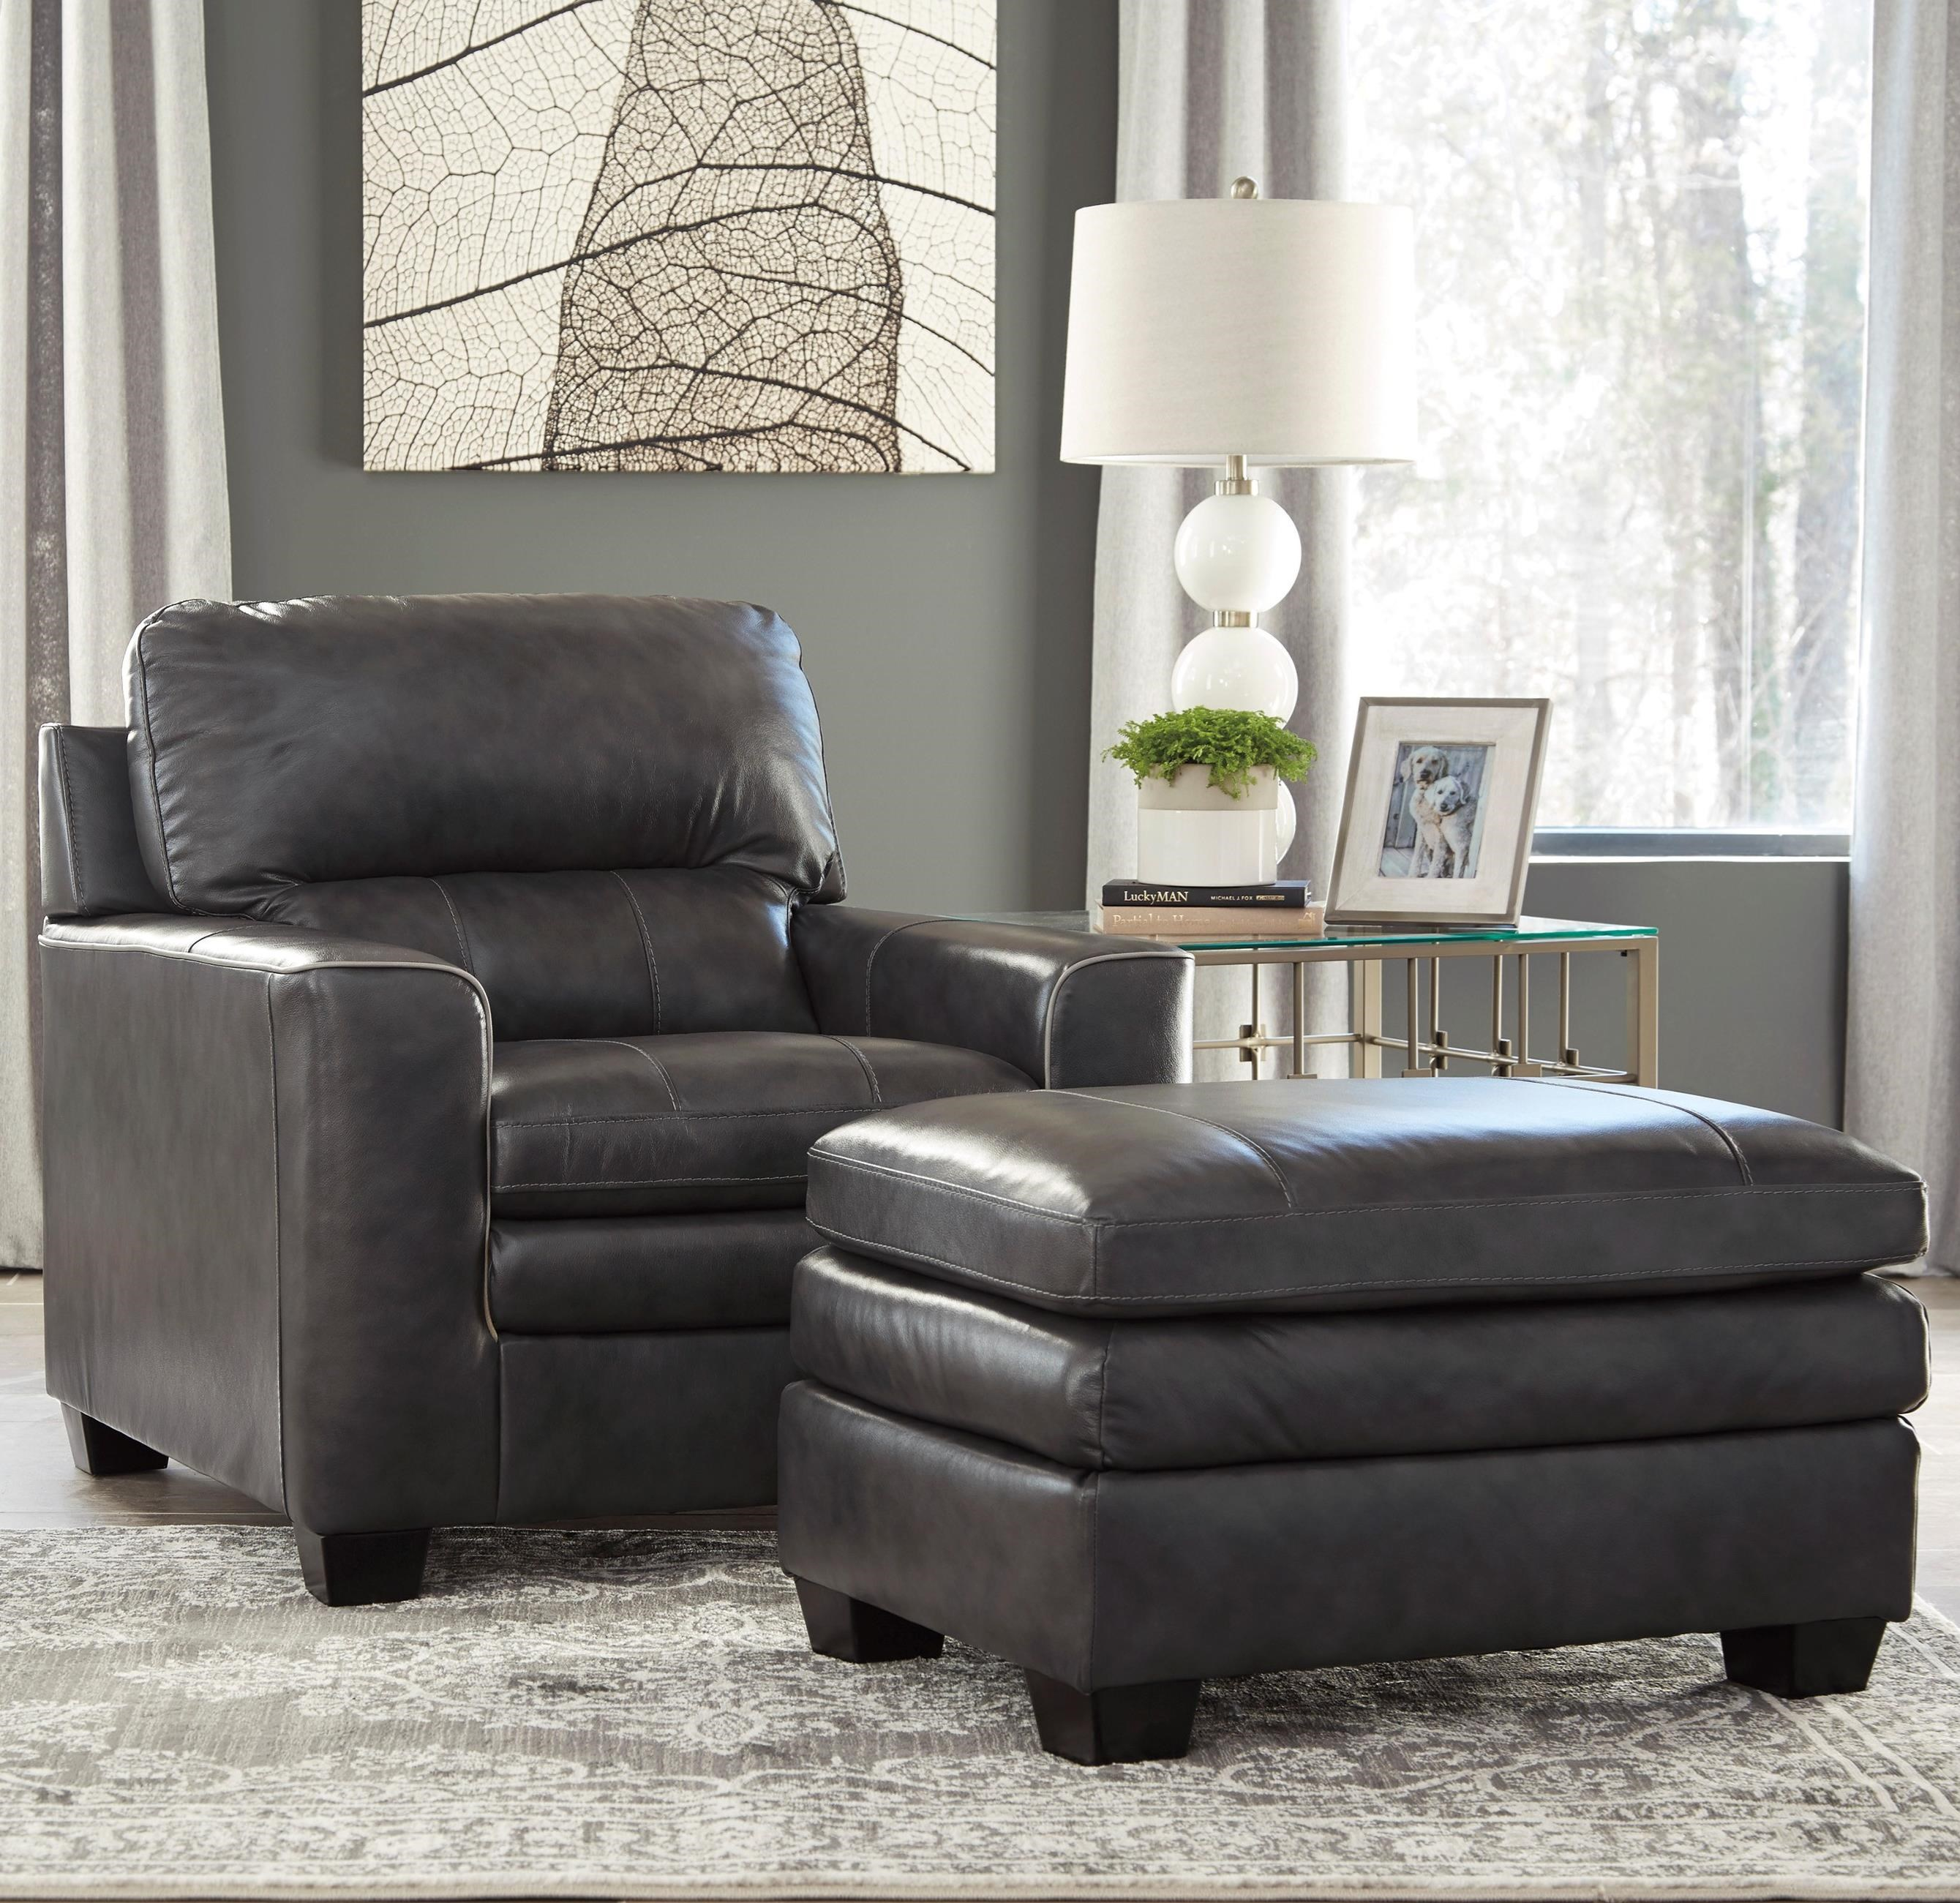 Signature Design by Ashley Gleason Chair & Ottoman - Item Number: 1570220+14